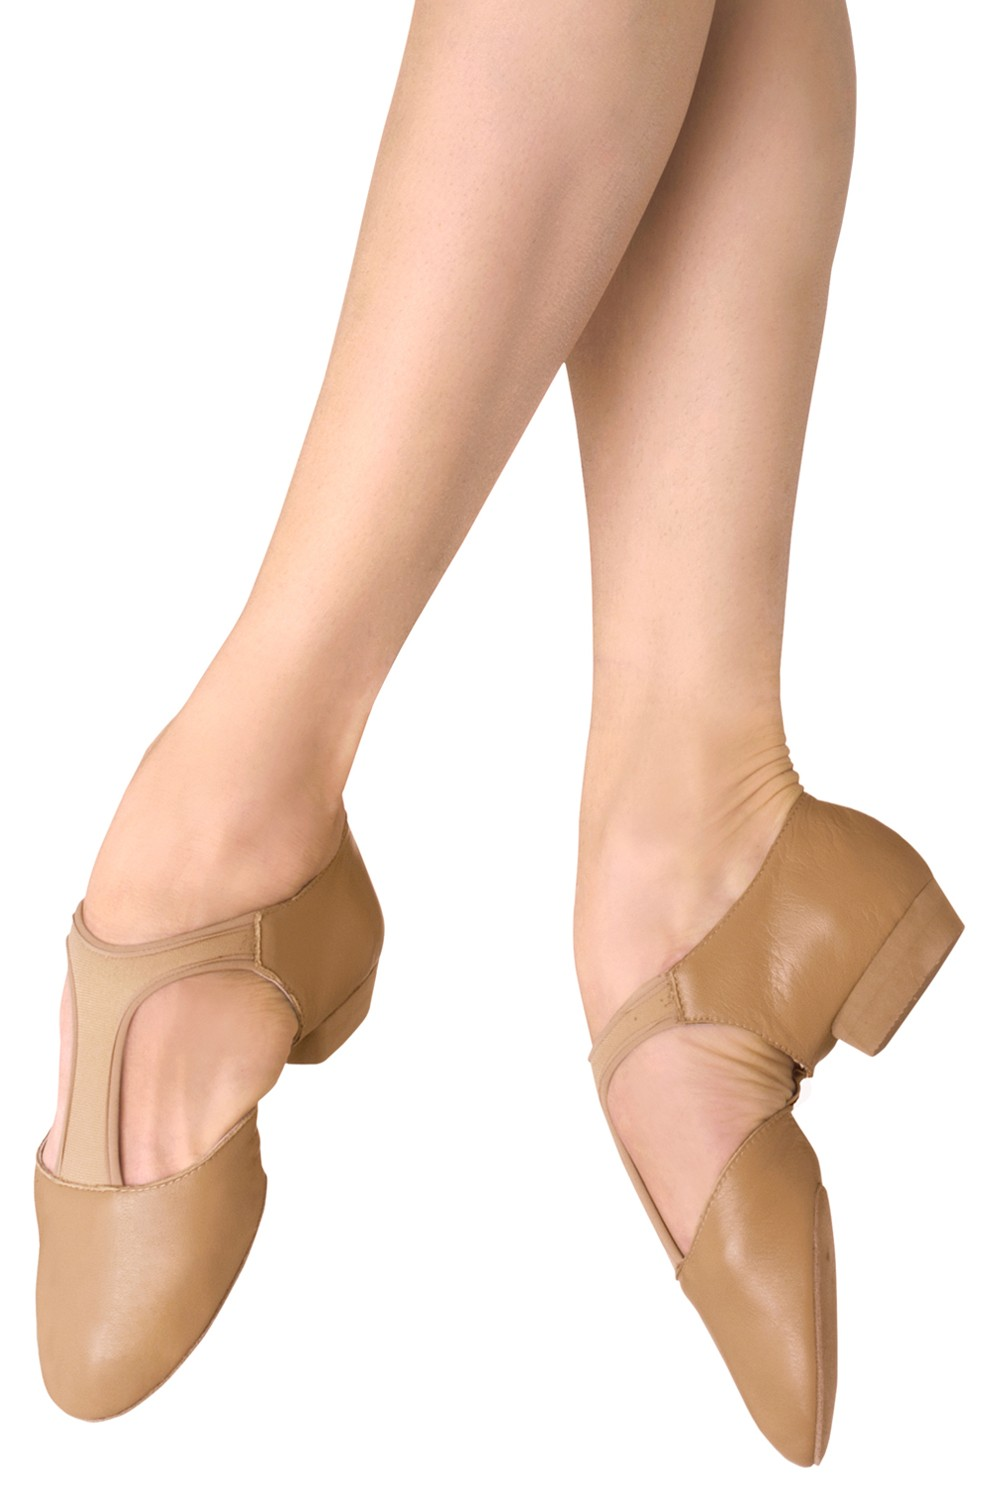 Elastosplit Grecian - Girls Girl's Jazz Shoes